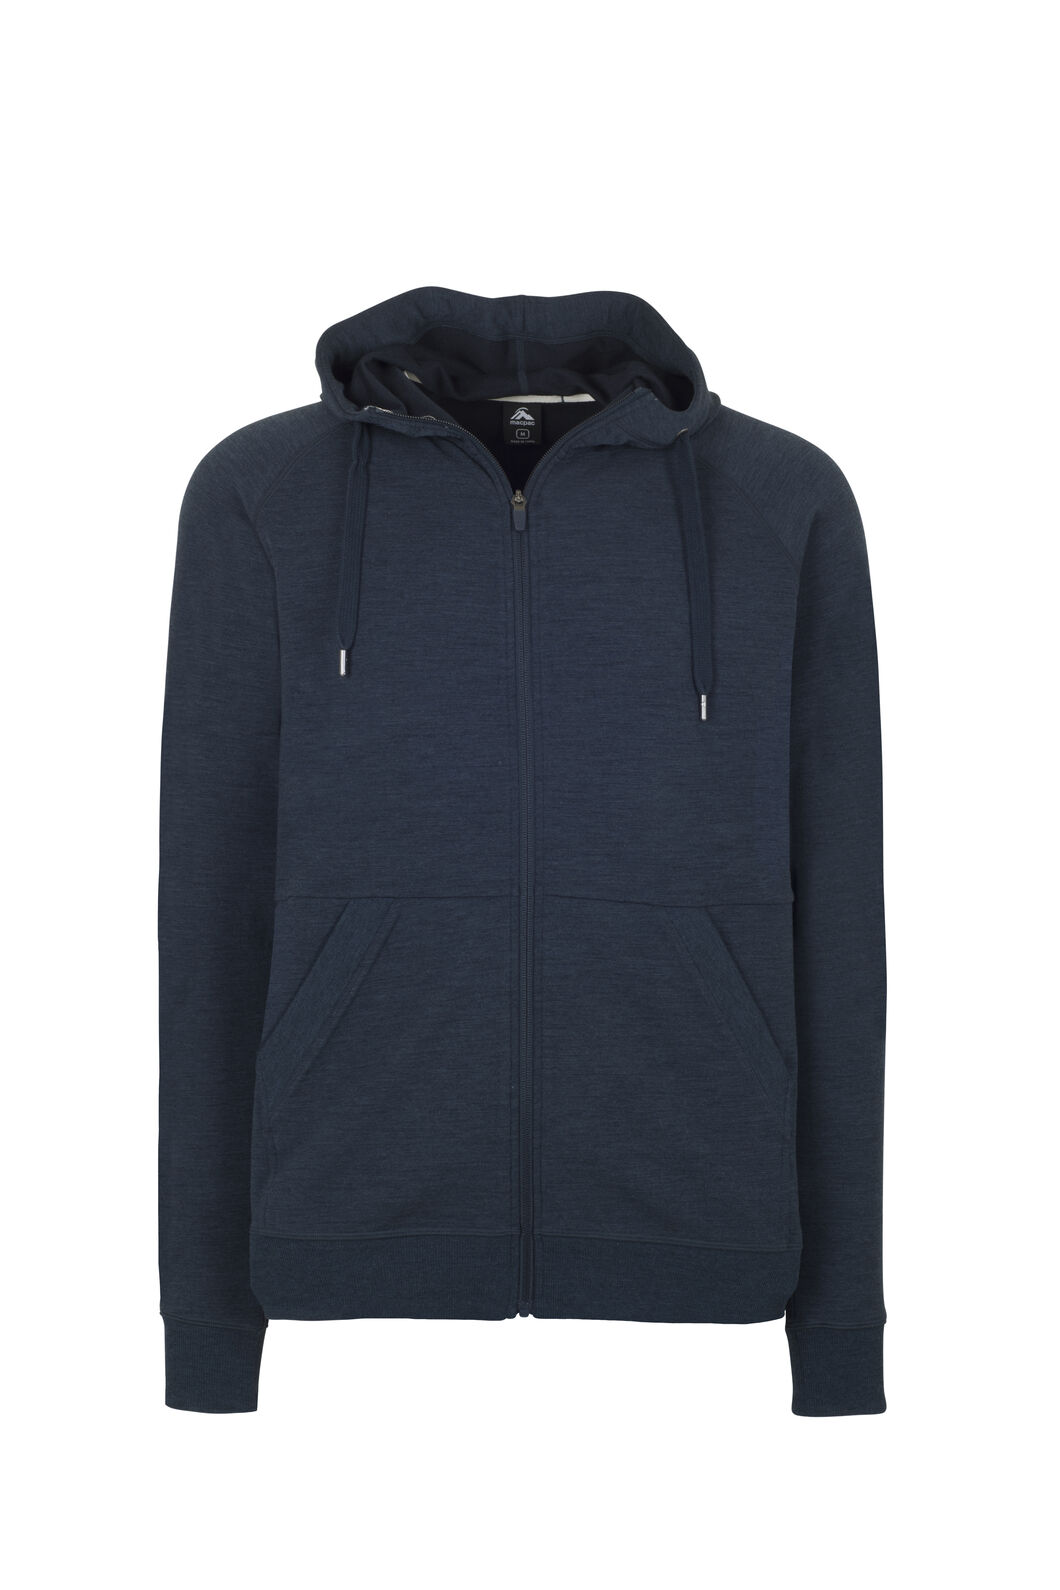 Macpac Escape Merino Hoody - Men's, Carbon Marle, hi-res